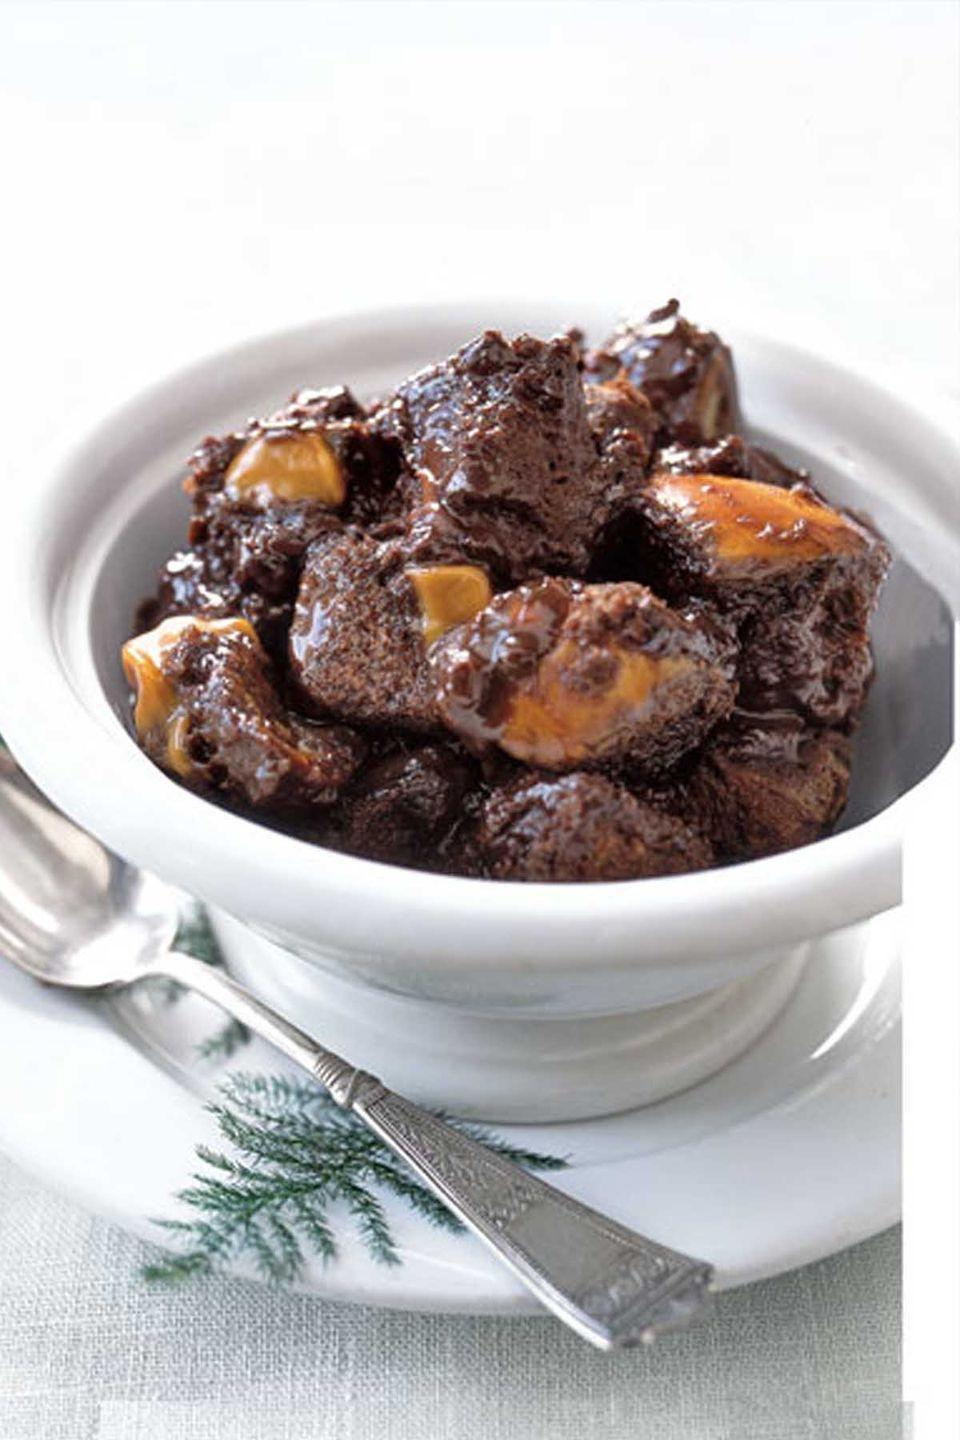 "<p>Melted caramel coats this chocolate-chip challah-bread pudding, served warm.</p><p><strong><a href=""https://www.countryliving.com/food-drinks/recipes/a1136/chocolate-caramel-bread-pudding-3243/"" rel=""nofollow noopener"" target=""_blank"" data-ylk=""slk:Get the recipe"" class=""link rapid-noclick-resp"">Get the recipe</a>.</strong></p><p><a class=""link rapid-noclick-resp"" href=""https://www.amazon.com/Premium-Stainless-Steel-Mixing-Brushed/dp/B01HTYH8YA/?tag=syn-yahoo-20&ascsubtag=%5Bartid%7C10050.g.1138%5Bsrc%7Cyahoo-us"" rel=""nofollow noopener"" target=""_blank"" data-ylk=""slk:SHOP MIXING BOWLS"">SHOP MIXING BOWLS</a></p>"